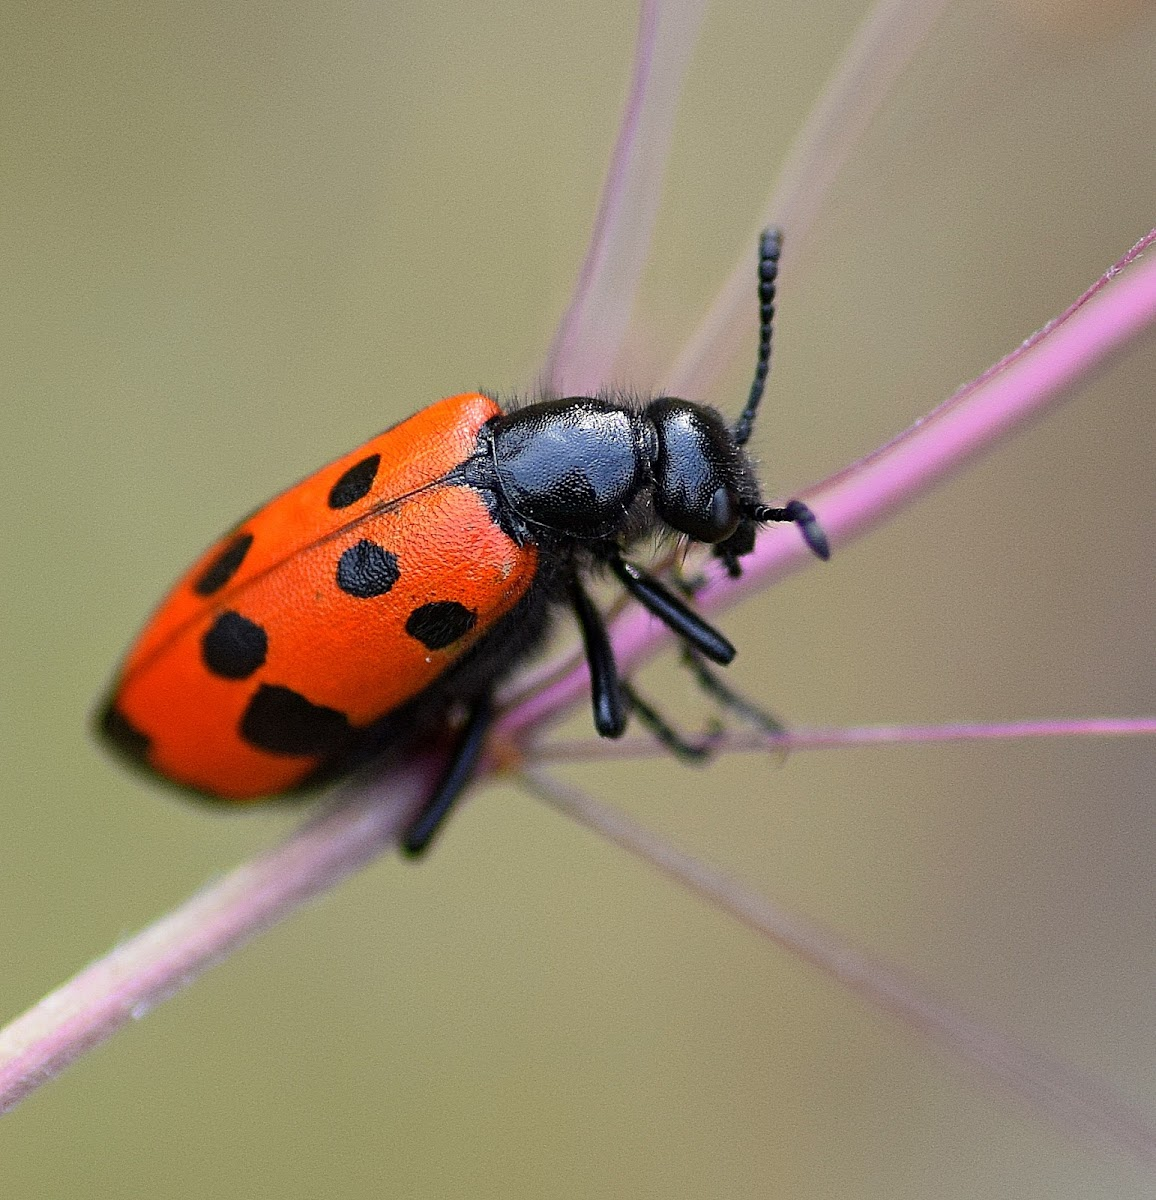 Four-spotted Blister Beetle